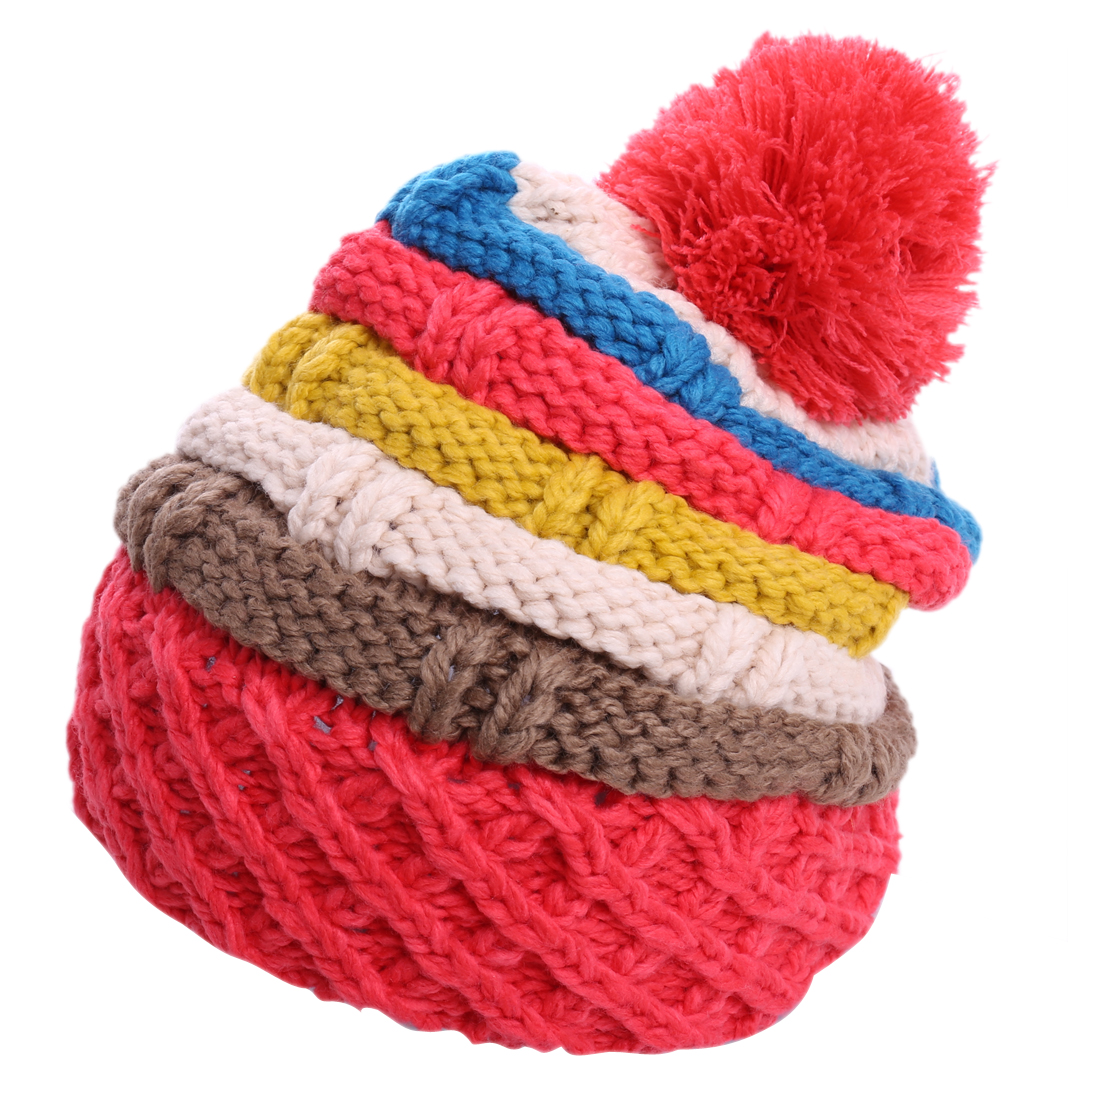 Woman Pretty Red Beige Colorful Striped Warm Cable-Knitted Hat